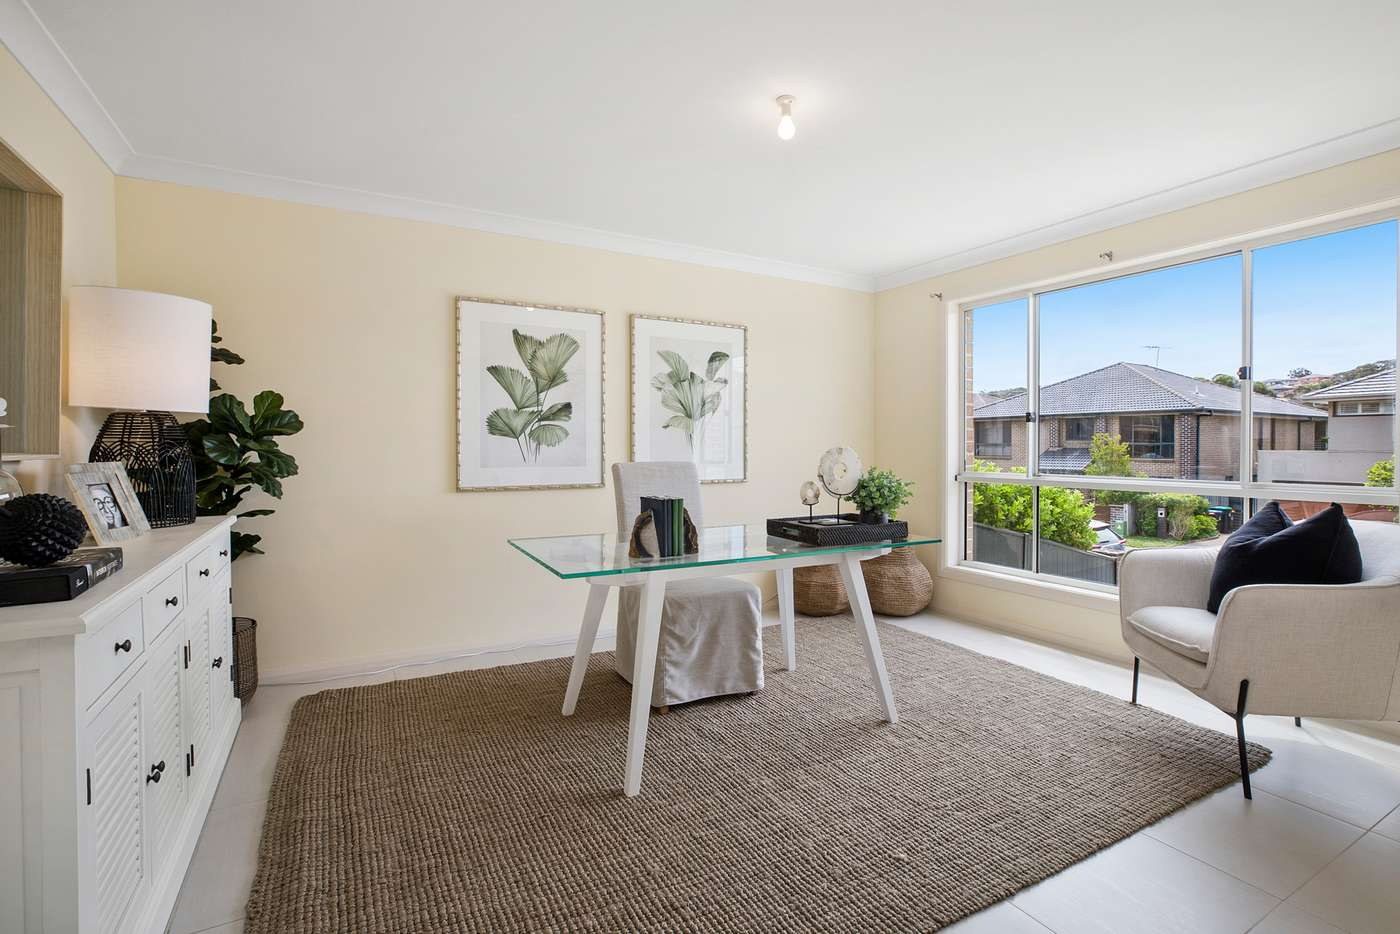 Sixth view of Homely house listing, 12 Ben Love Place, Beacon Hill NSW 2100